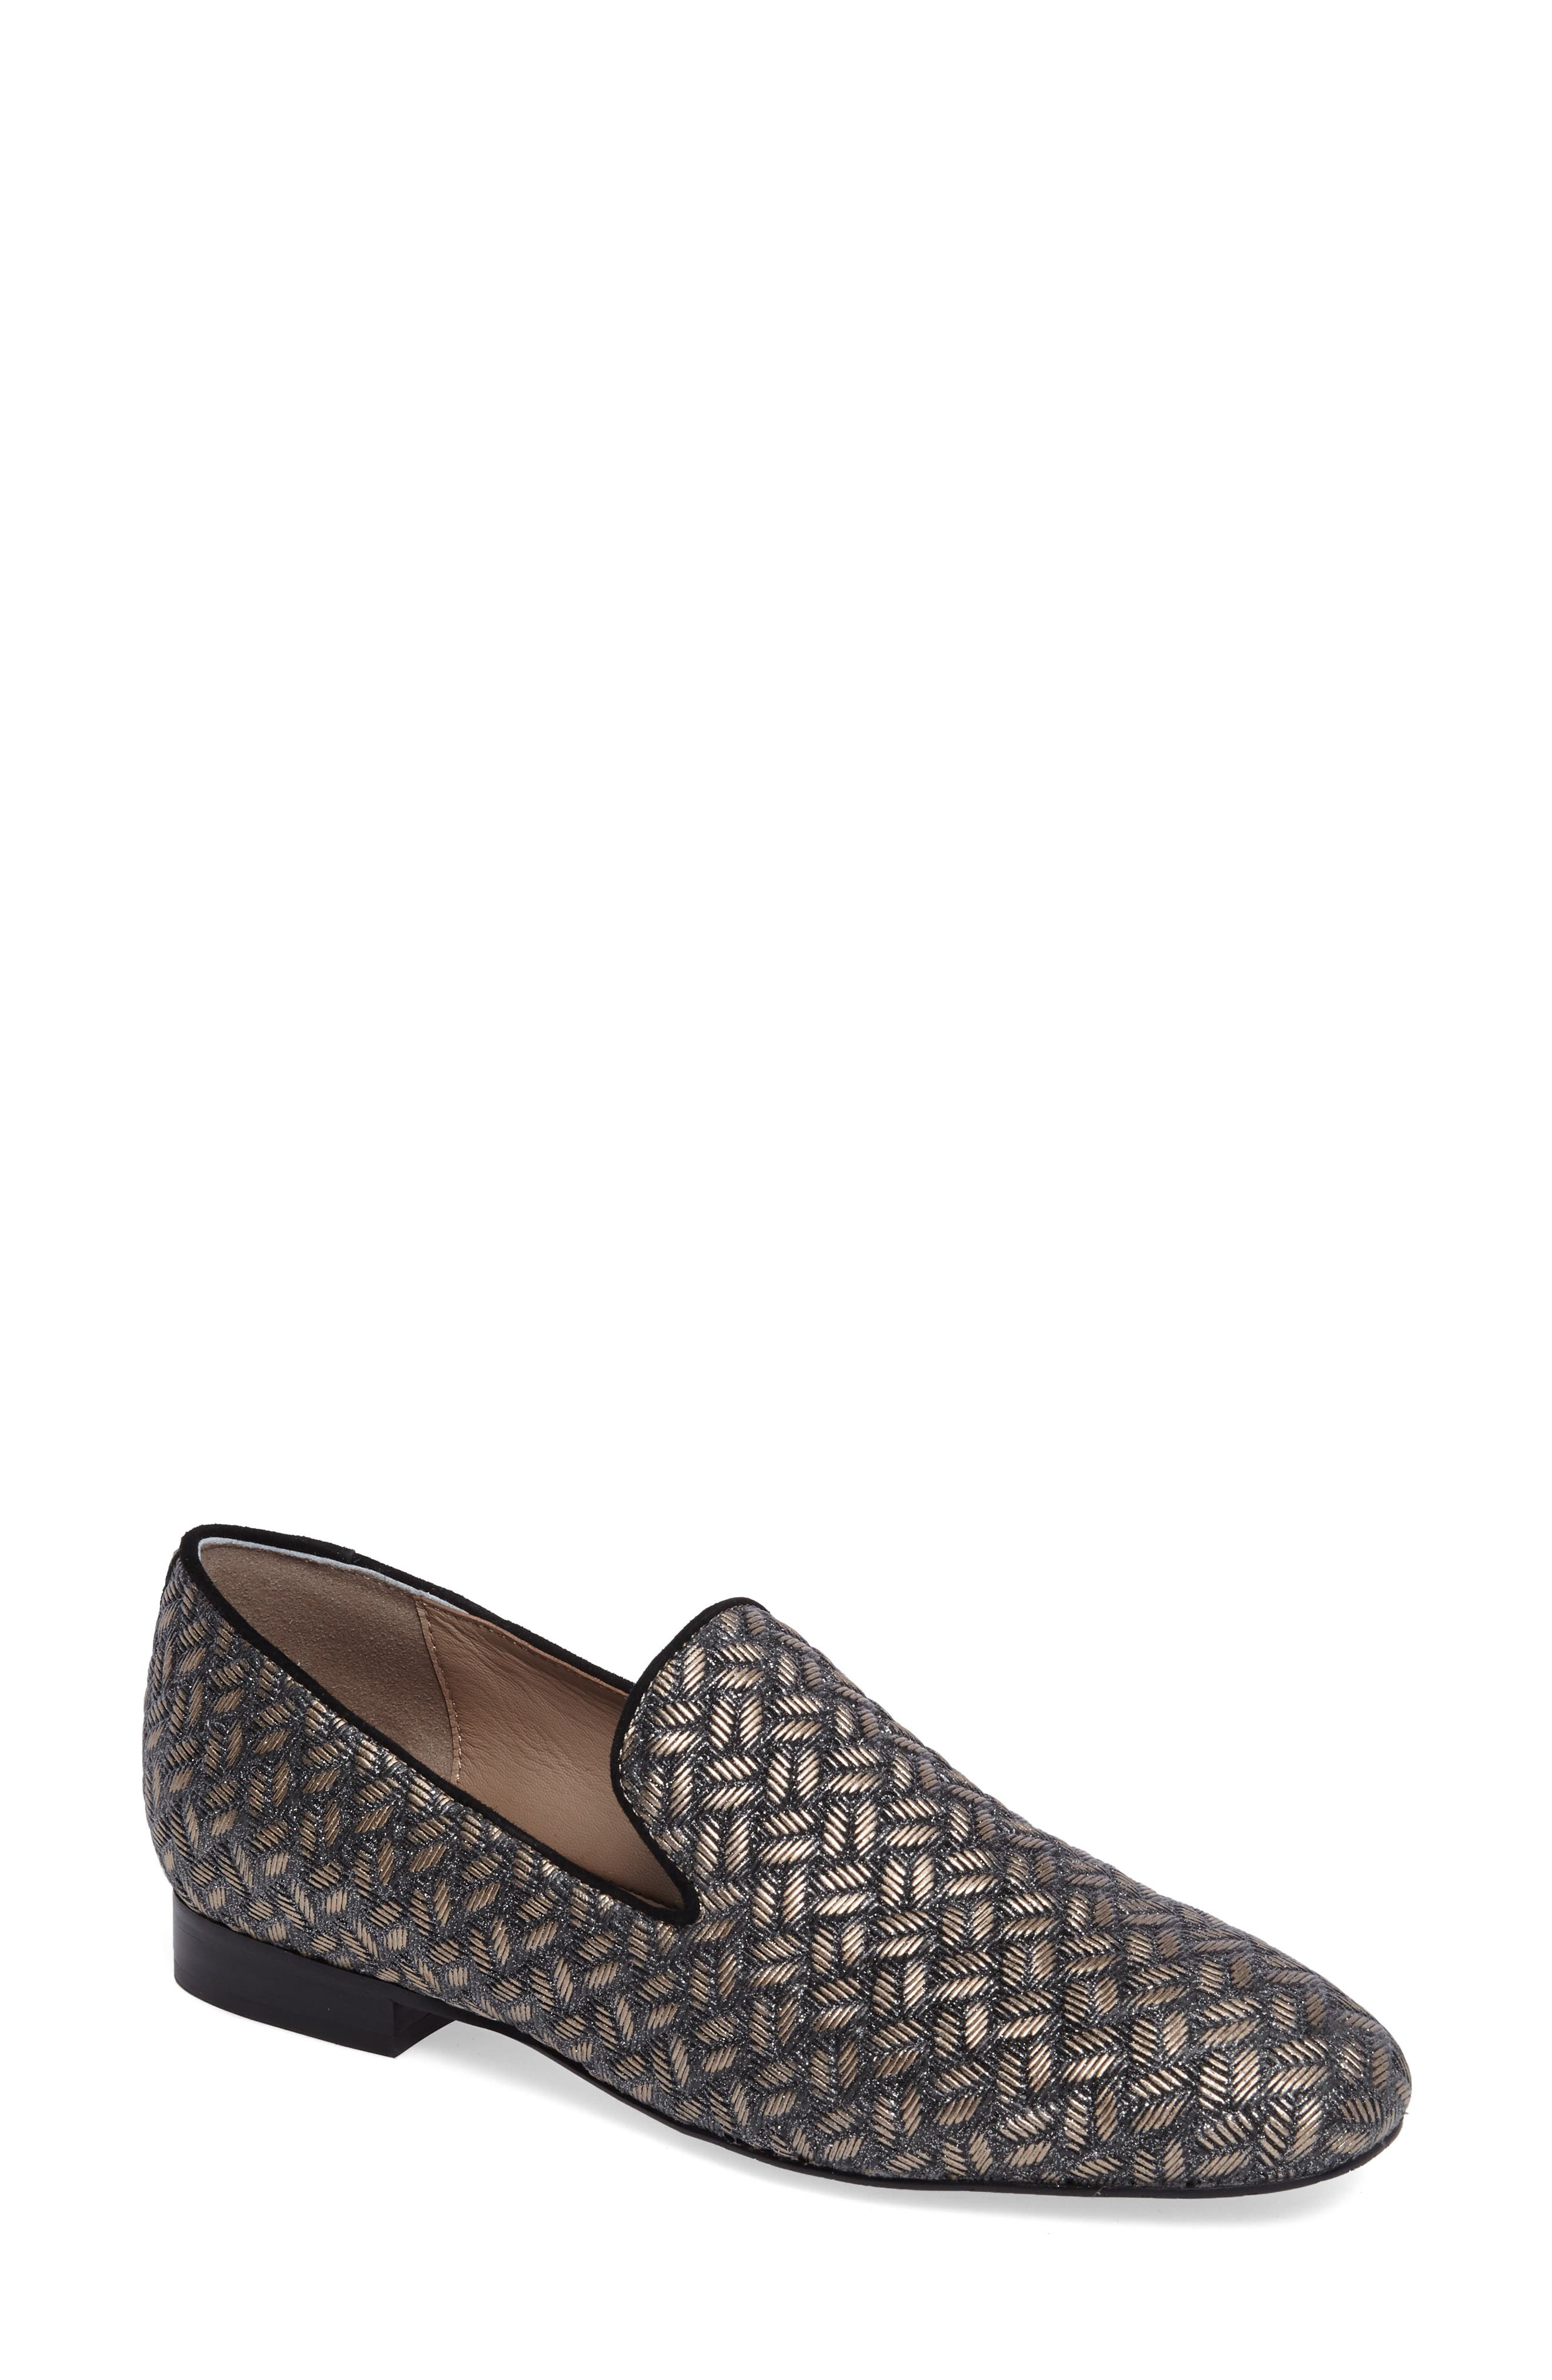 Lyle Loafer,                             Main thumbnail 2, color,